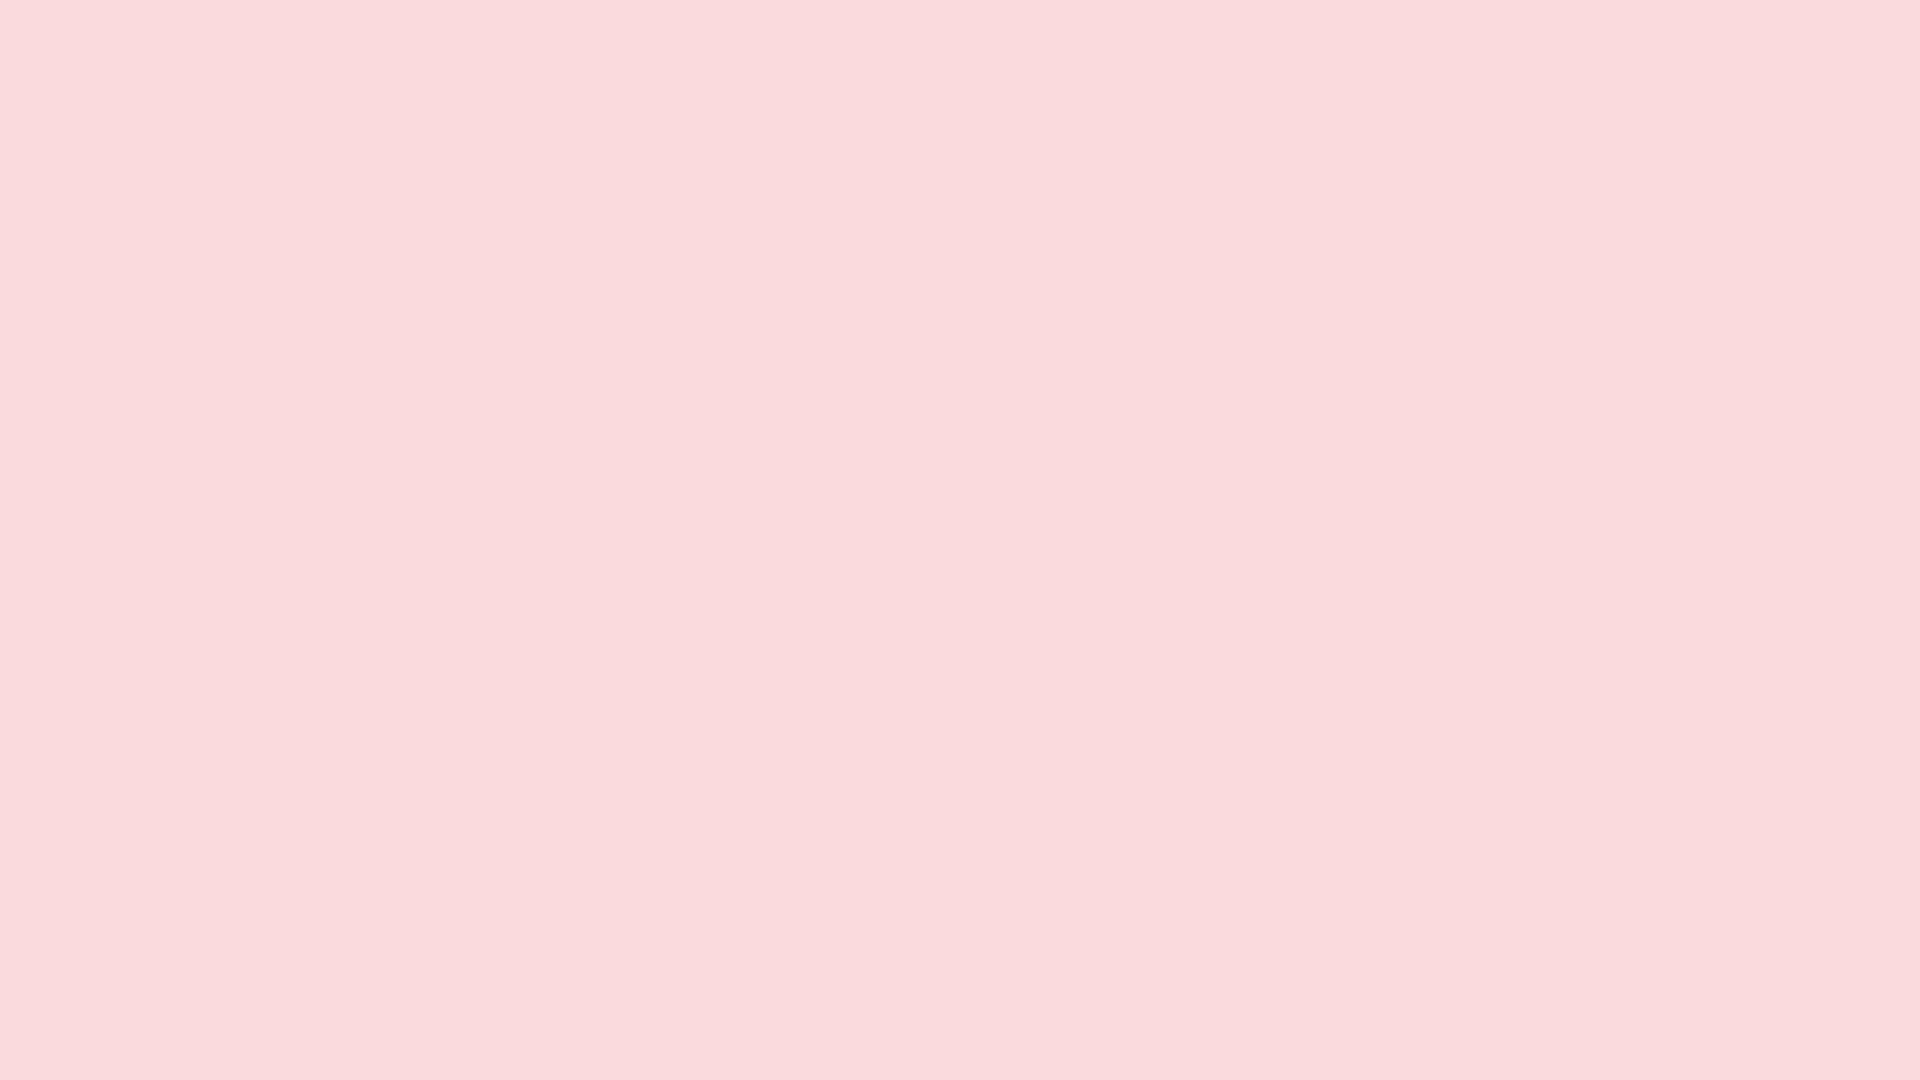 1920x1080 resolution Pale Pink solid color background view and 1920x1080